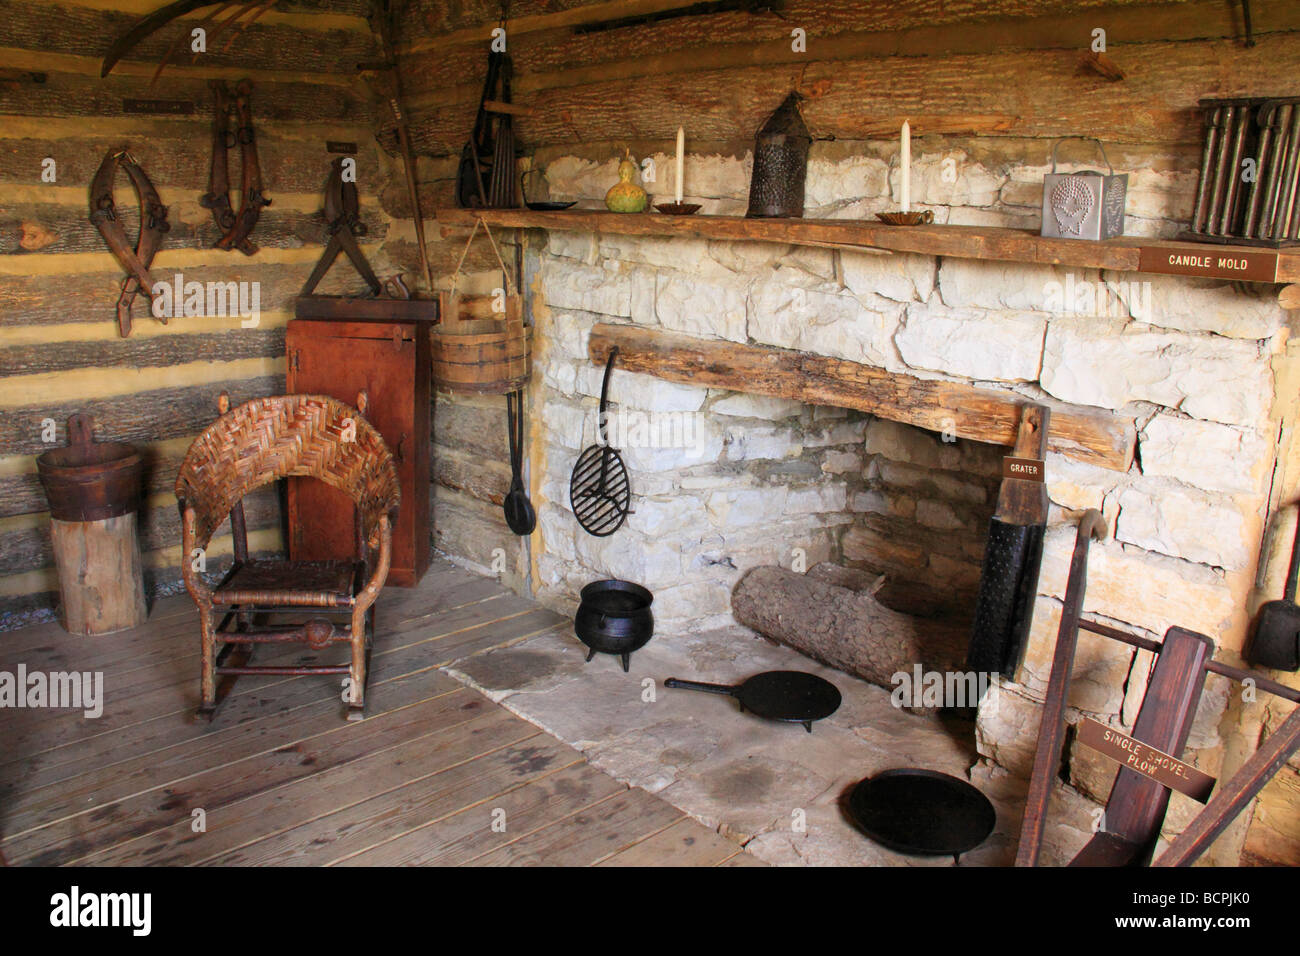 Interior of log cabin at Old Fort Harrod State Park Harrodsburg Kentucky - Stock Image